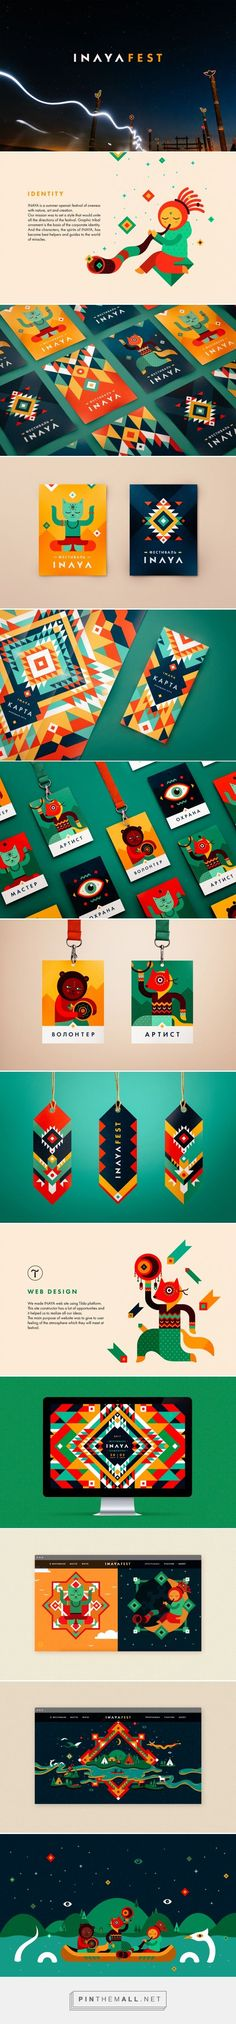 INAYA Festival identity on Behance. - a grouped images picture - Pin Them All Brand Identity Design, Corporate Design, Branding Design, Logo Design, Design Design, Japanese Graphic Design, Graphic Design Posters, Graphic Design Illustration, Event Branding